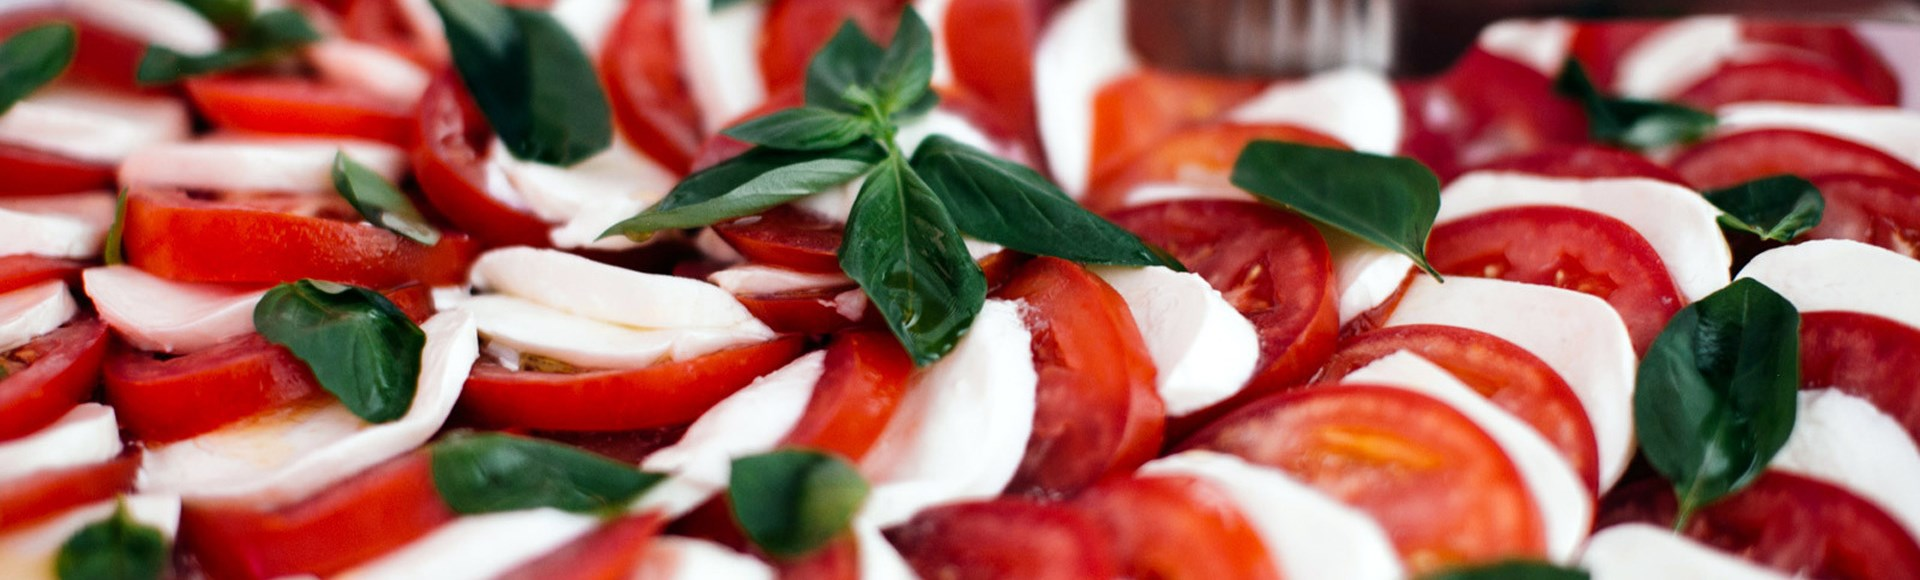 caprese-salad - Private Chef Service For Your Villa Holidays In Santorini, Cyclades, Greece